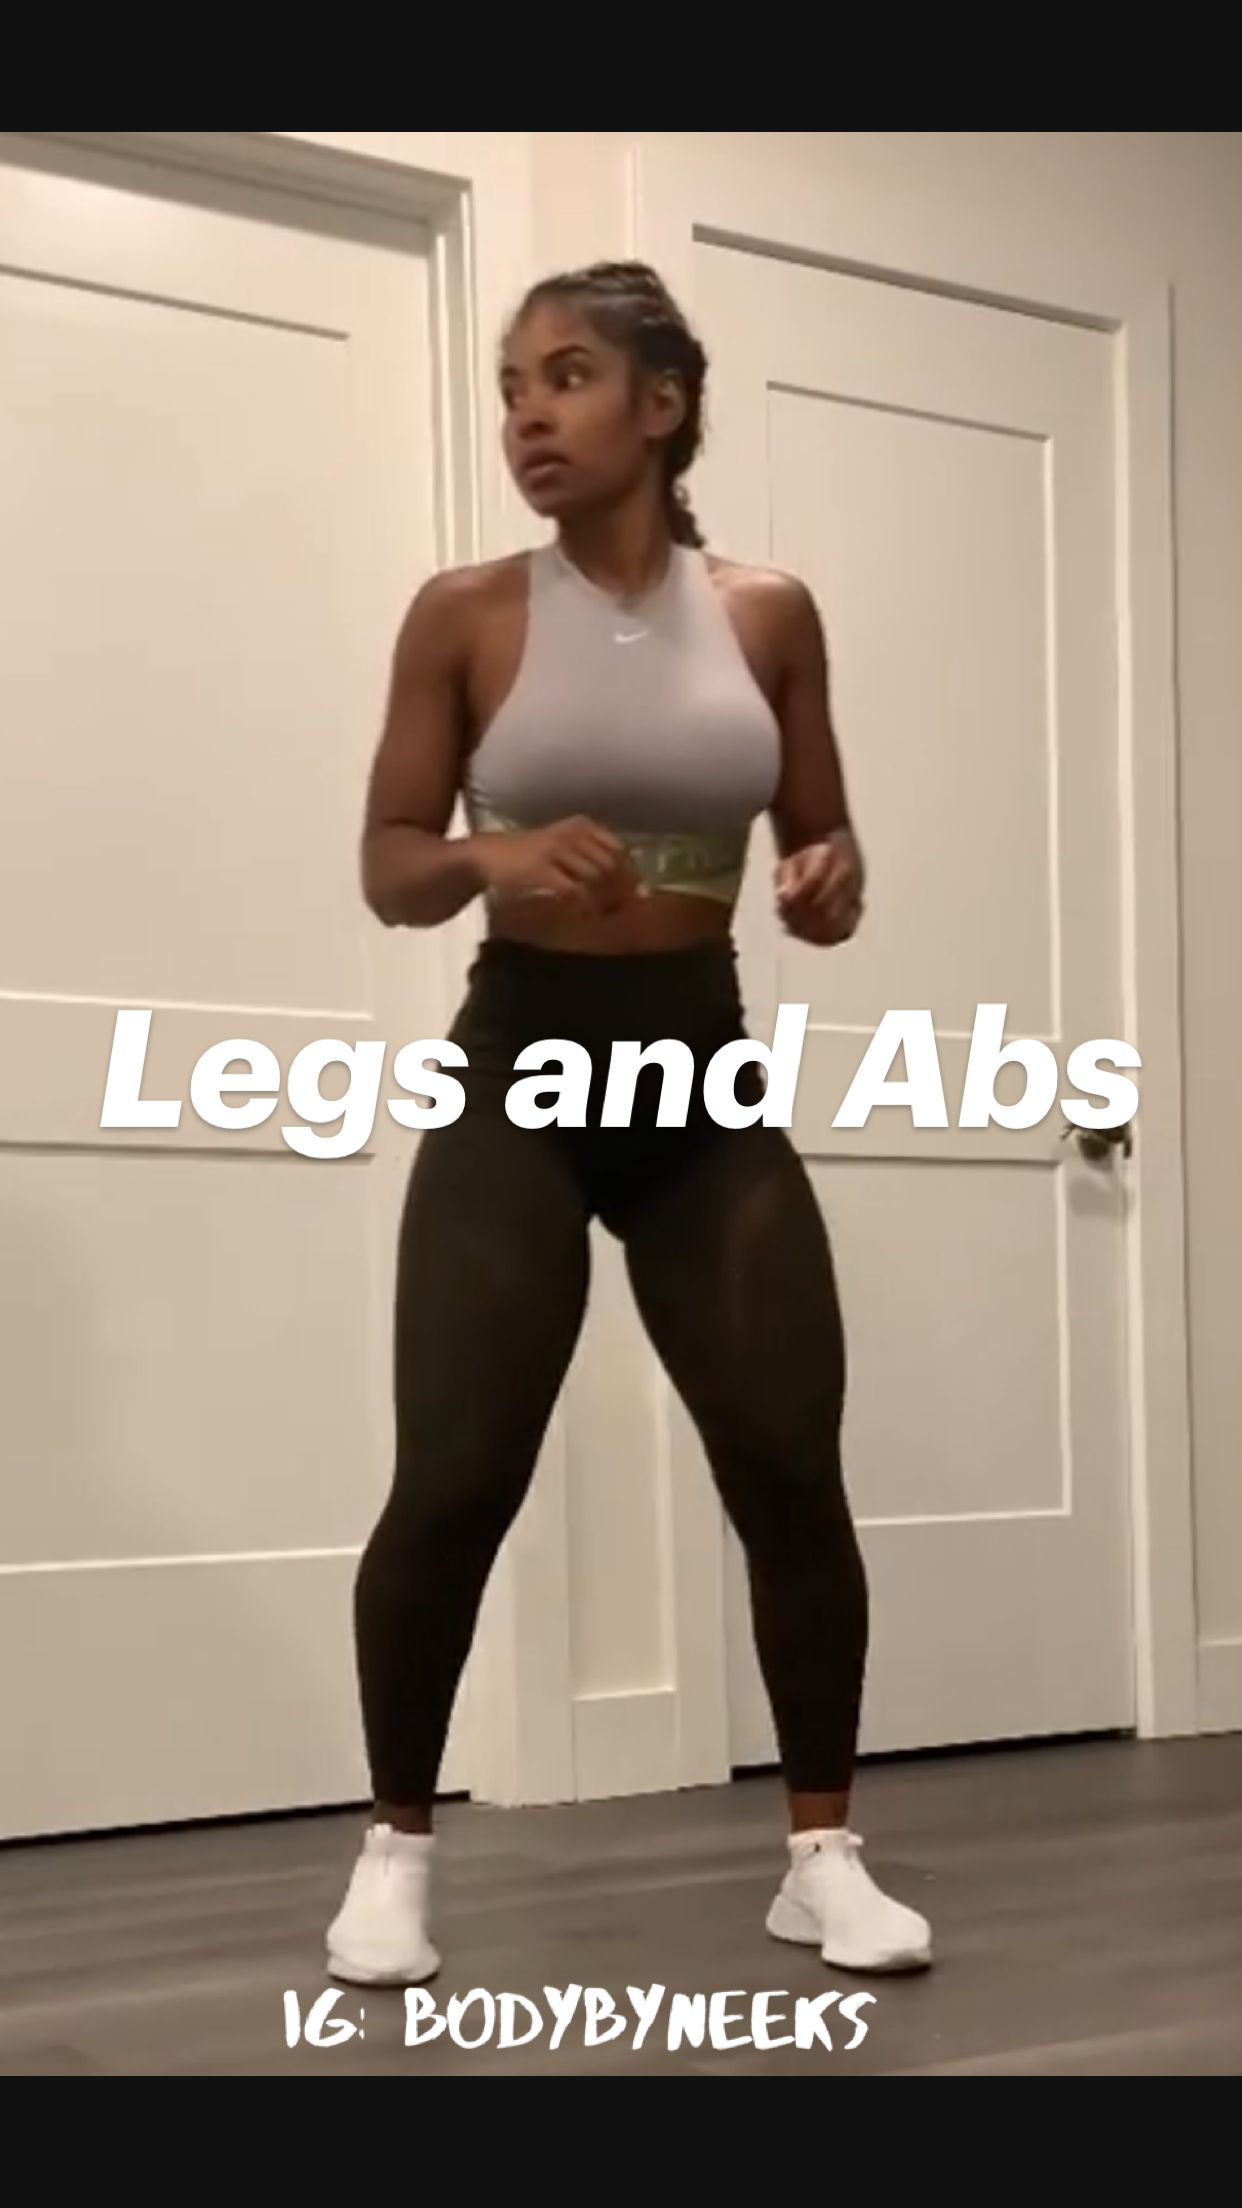 Legs and Abs